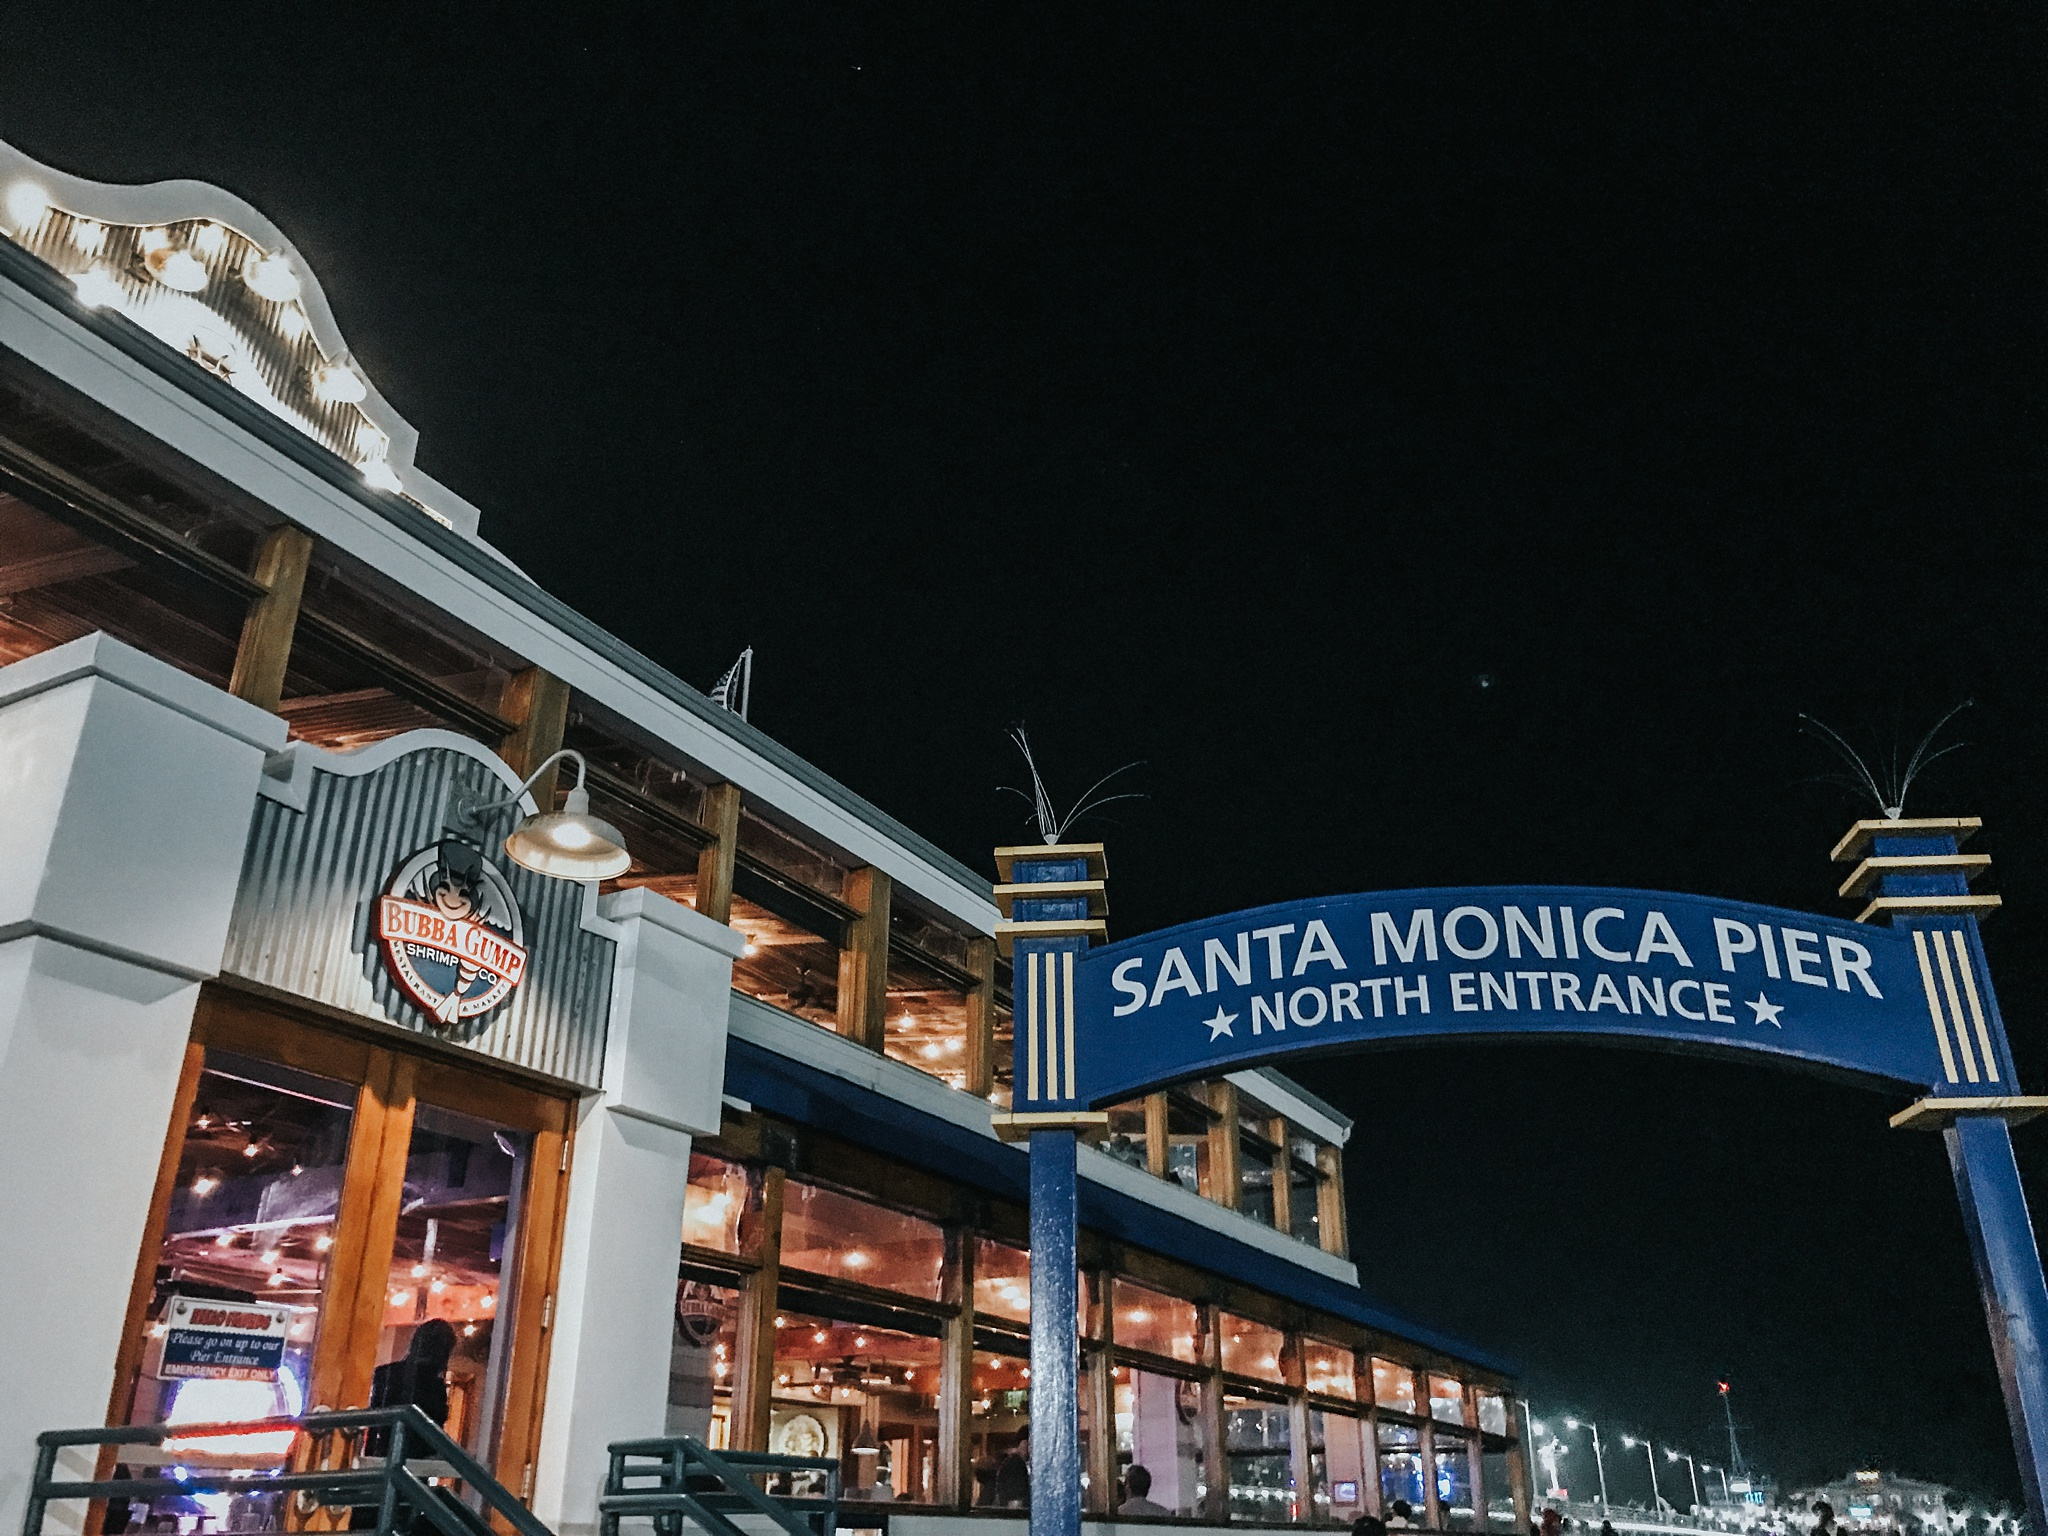 Full of courage/adrenaline from 2.5 hours of tattoo, I decided to take on Santa Monica Pier at night.